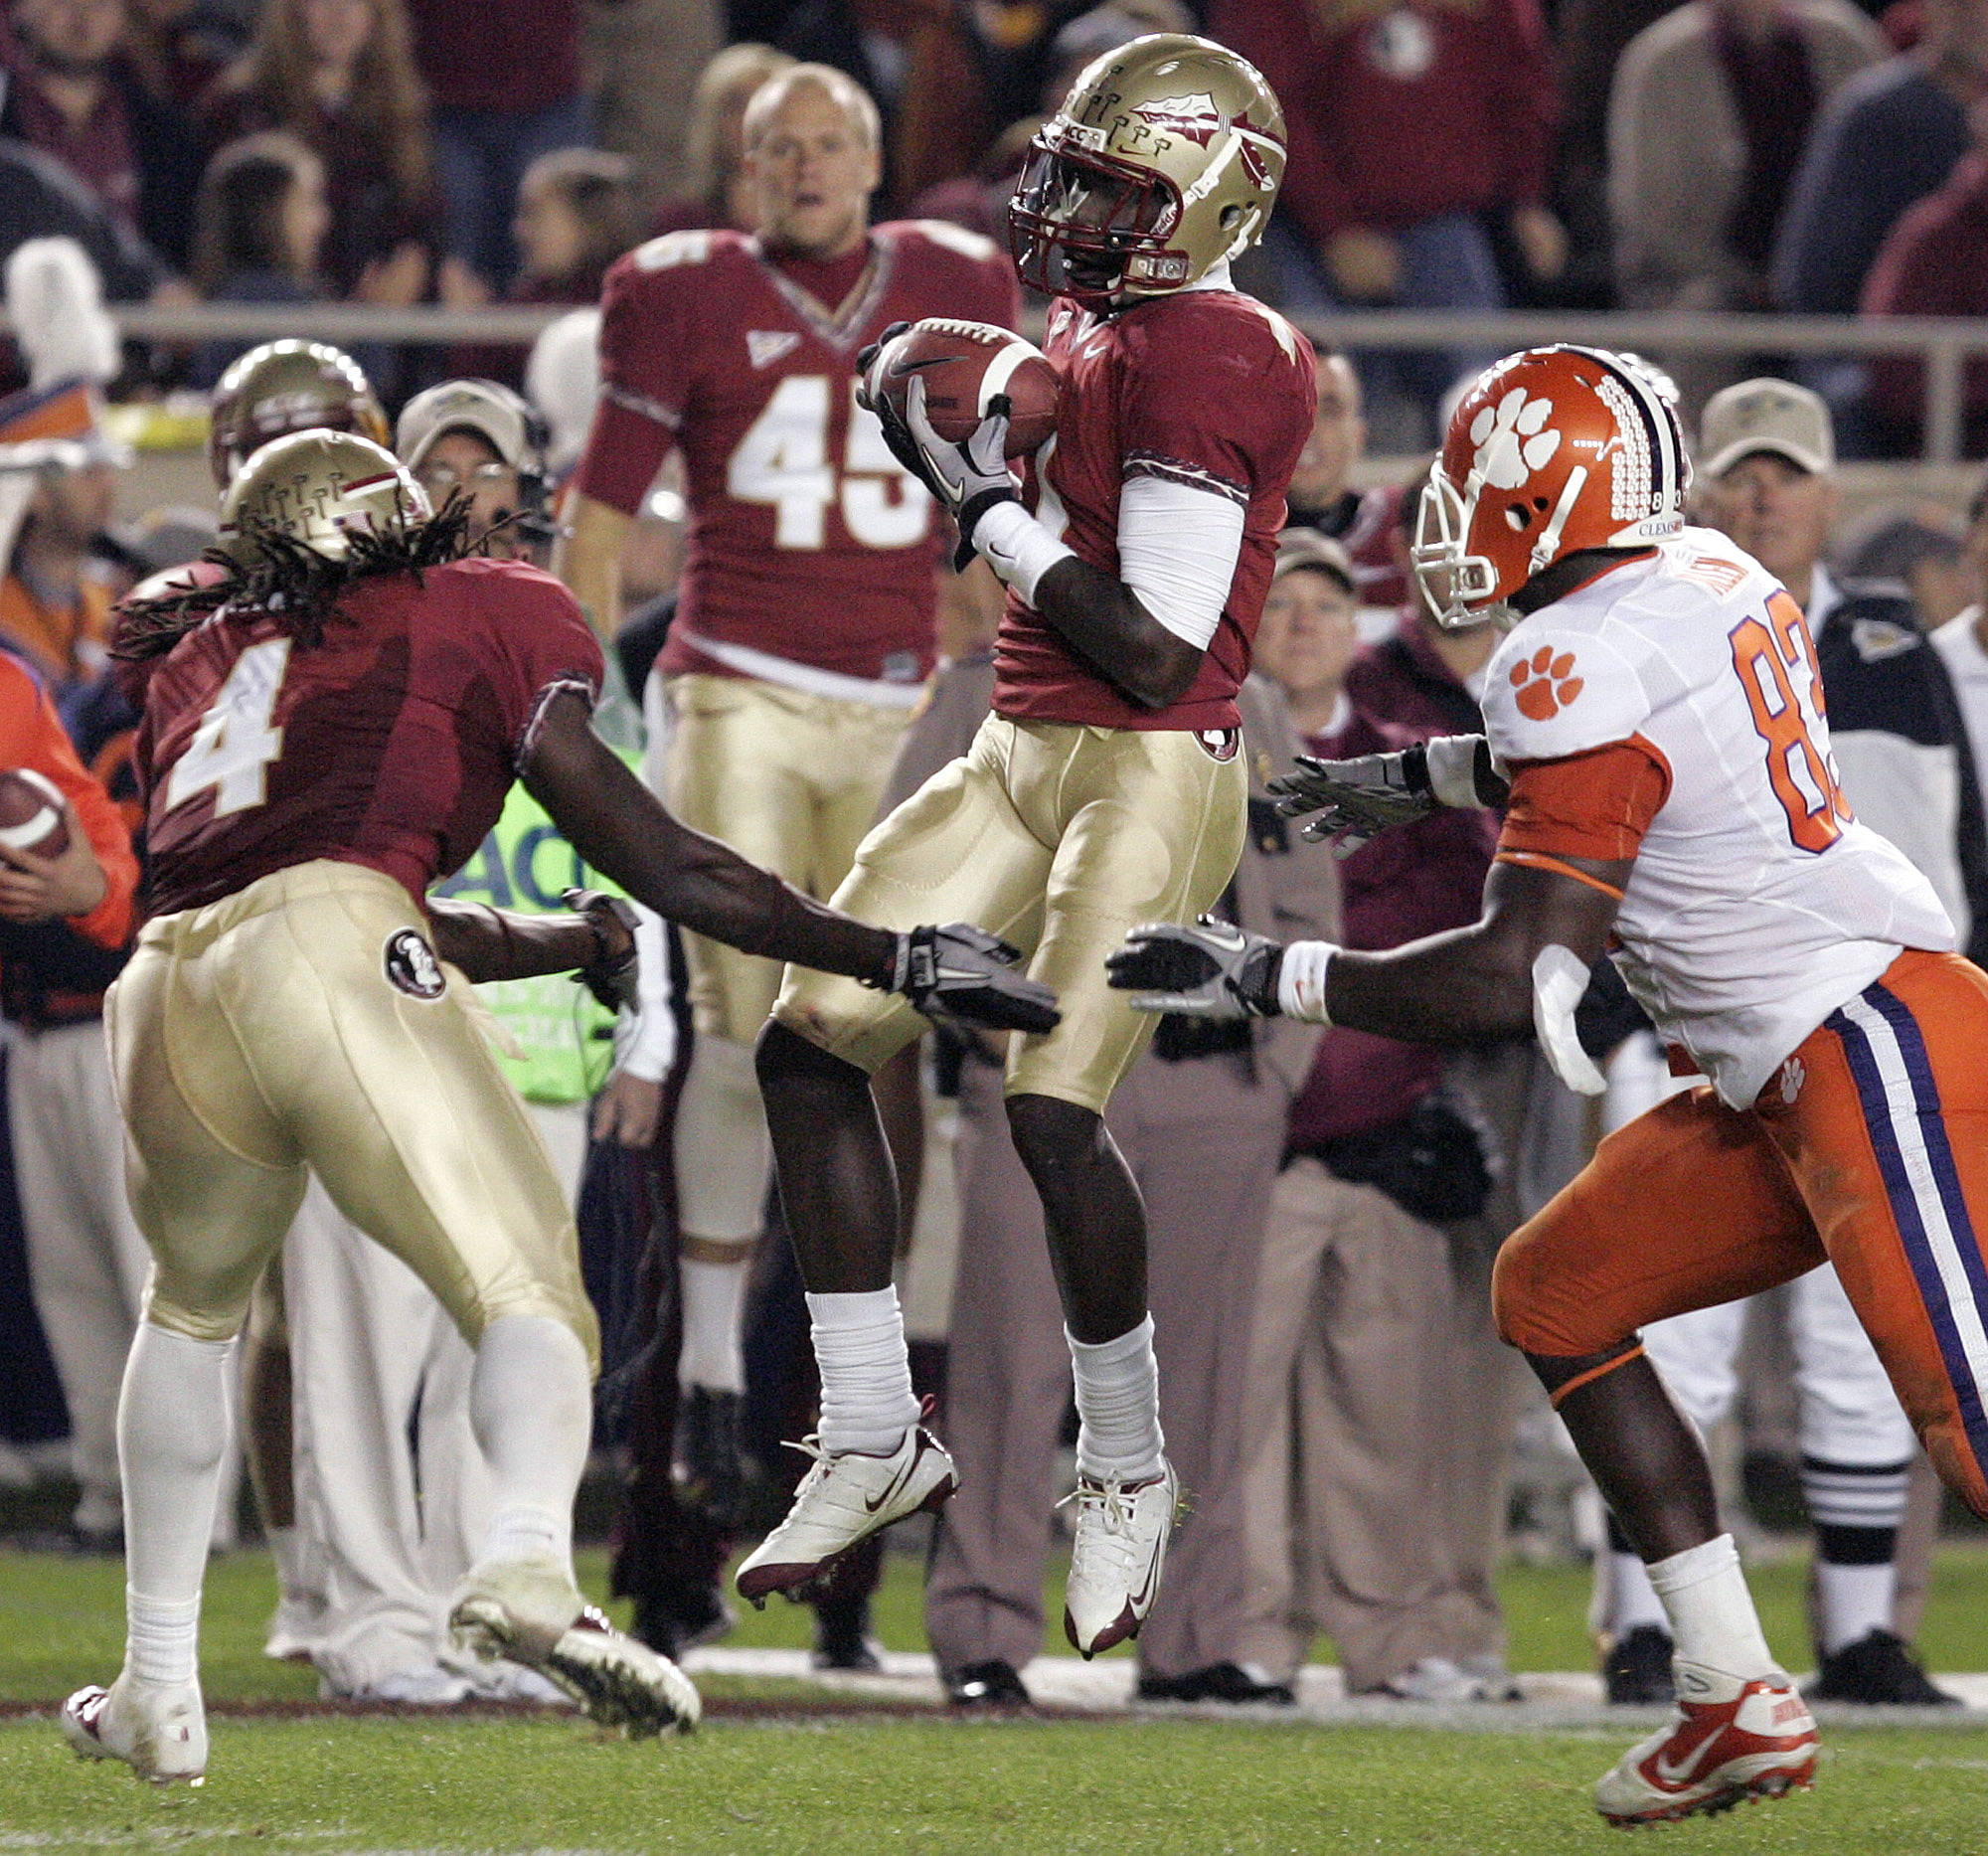 Florida State's Michael Harris, center, comes down with an interception off of Clemson's Kyle Parker in the second quarter of an NCAA college football game on Saturday, Nov. 13, 2010, in Tallahassee, Fla. (AP Photo/Steve Cannon)